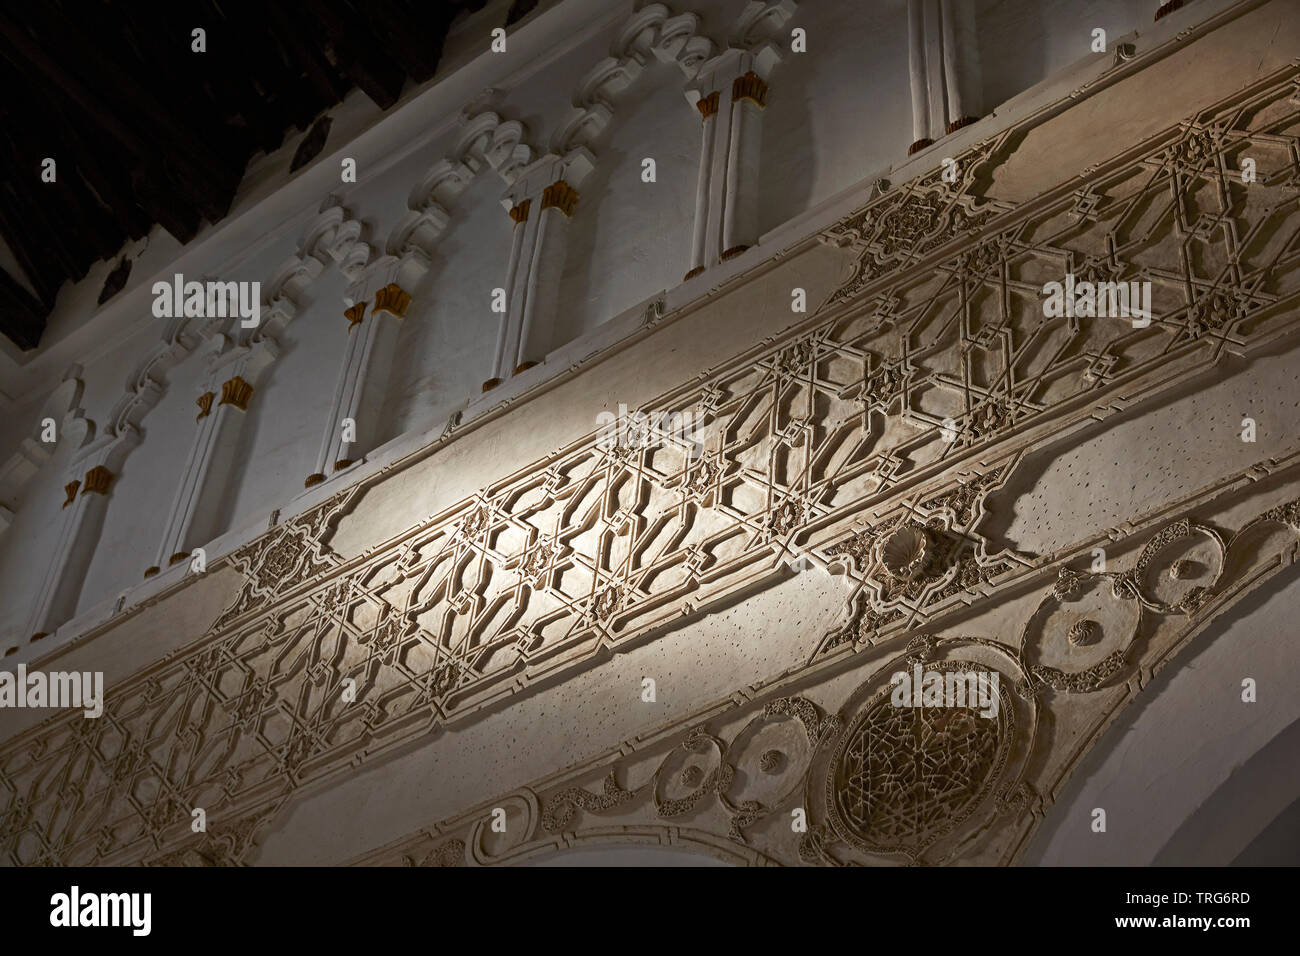 Wall Carvings in the historic 'Sinagoga de Santa Maria La Blanca' in Toldeo, built 1200 is considered the oldest synagogue building in Europe - Stock Image